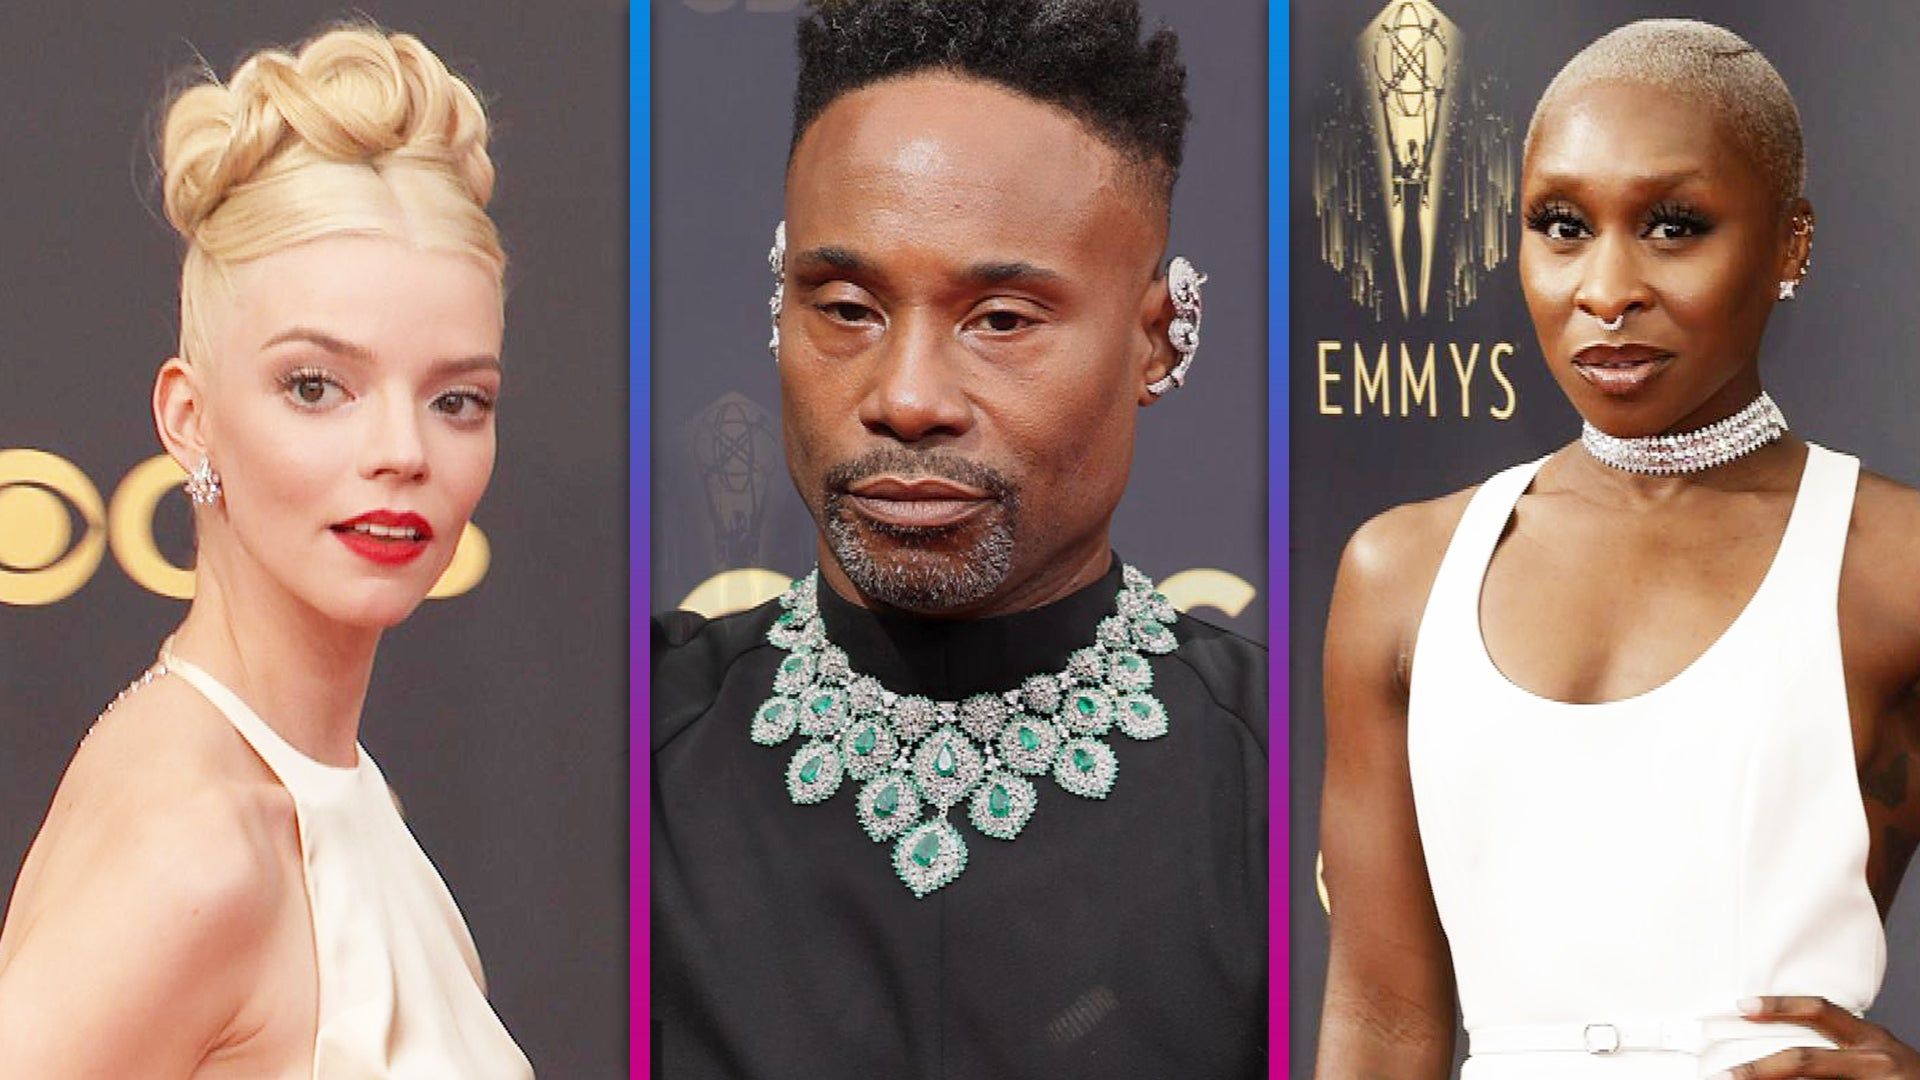 Emmys 2021: Fashion Secrets From the Stars